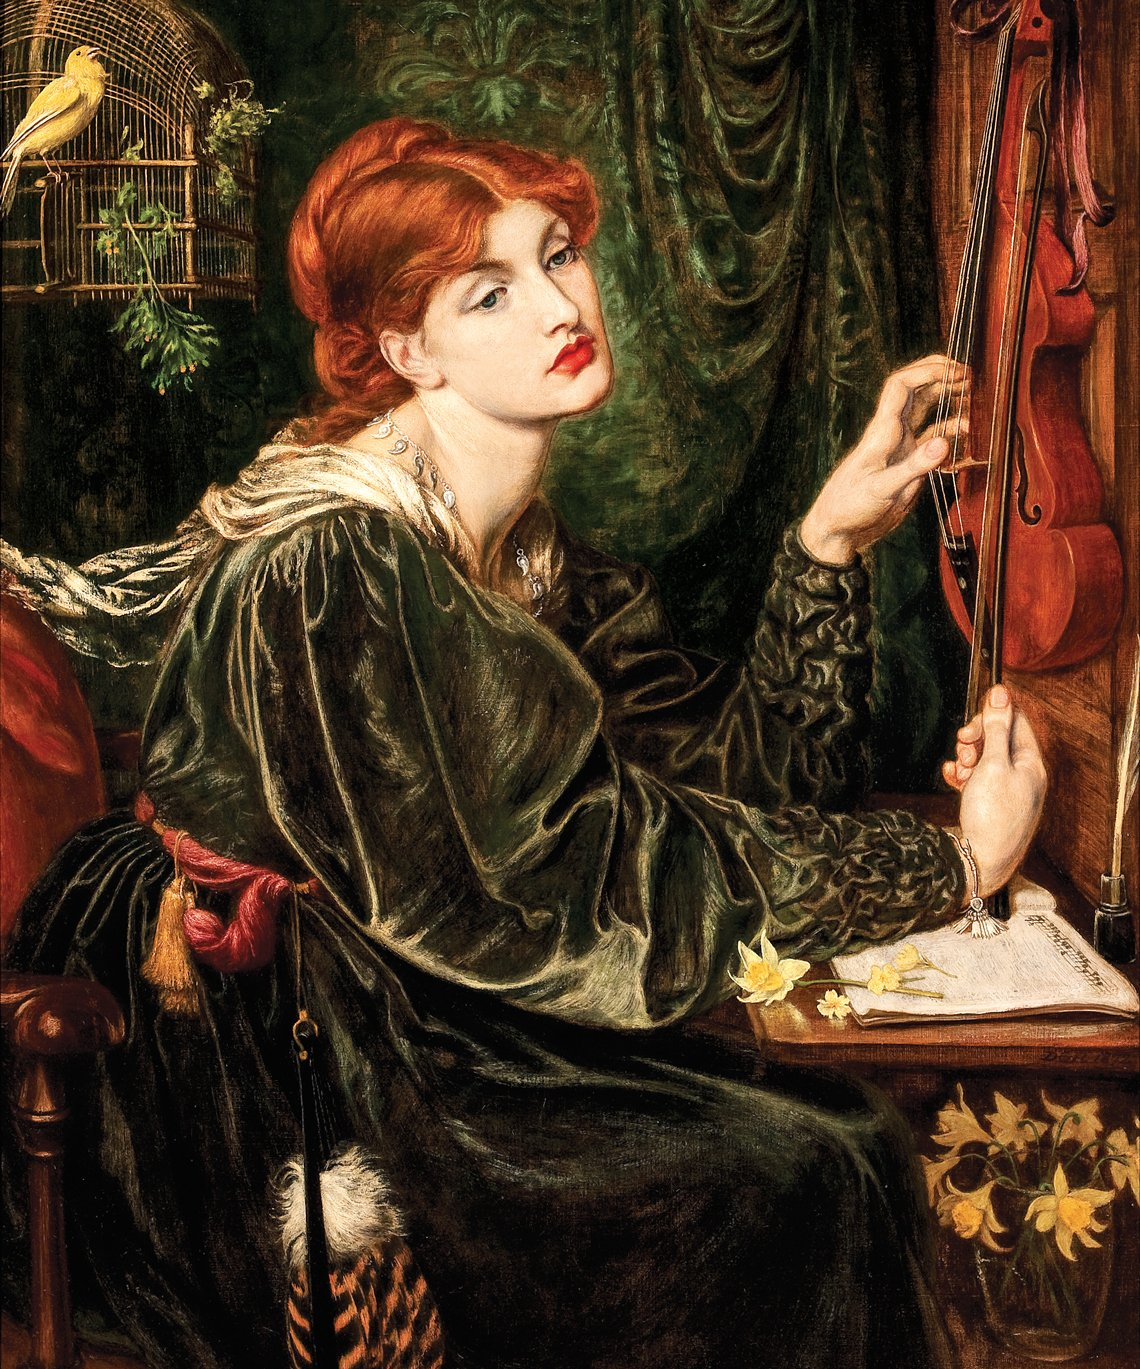 Truth Amp Beauty The Pre Raphaelites Amp The Old Masters By